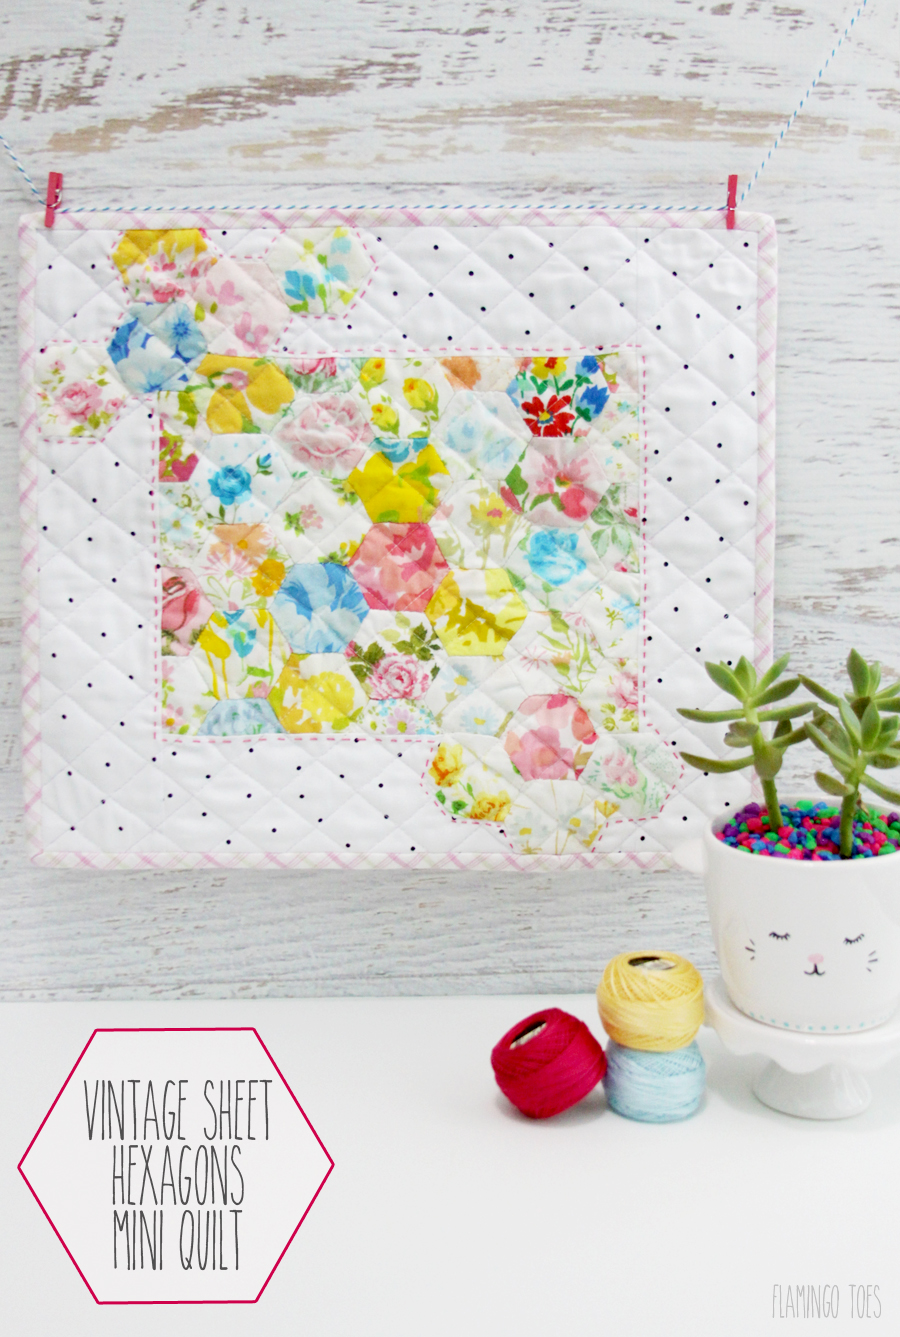 Vintage Sheet Hexagons Mini Quilt